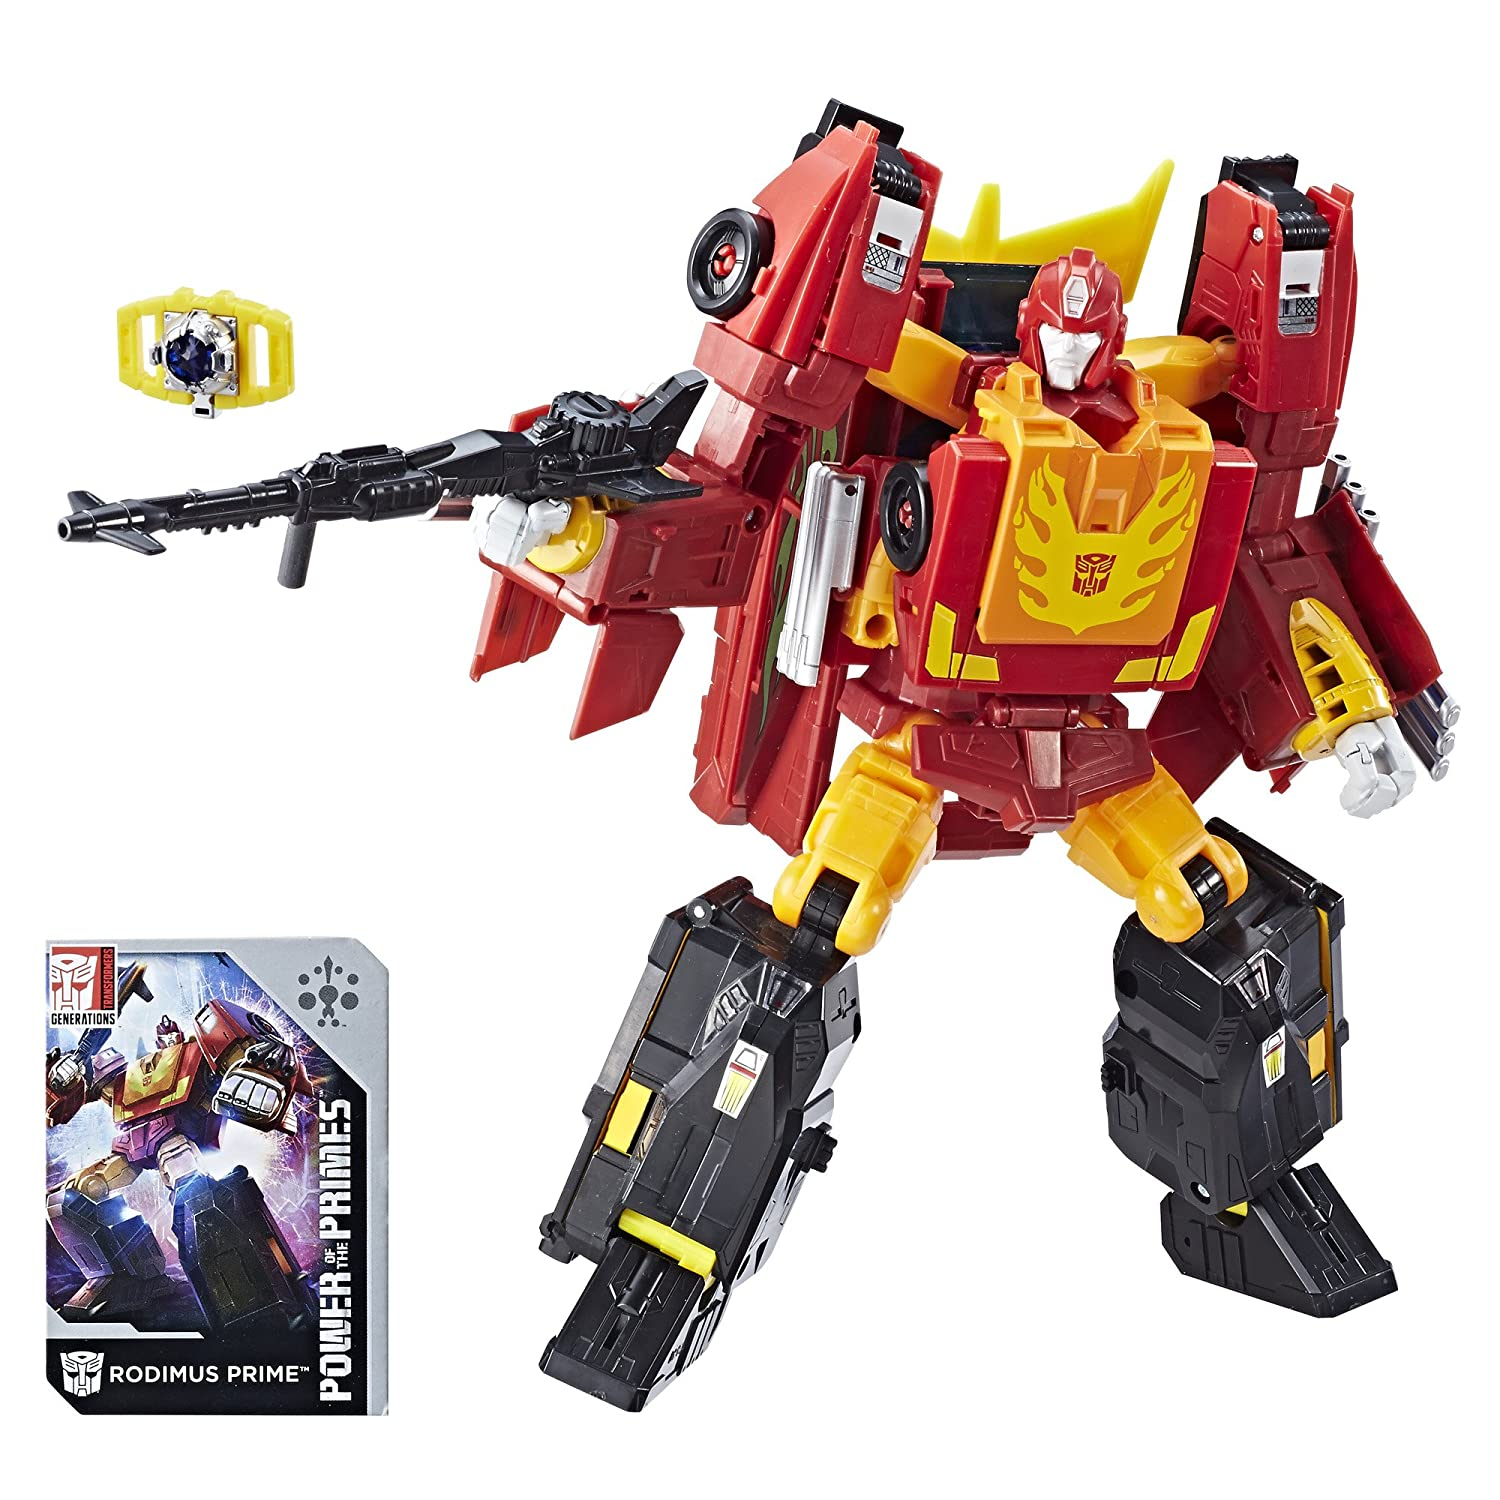 Transformers: Generations Power of the Primes Leader Evolution Rodimus Prime